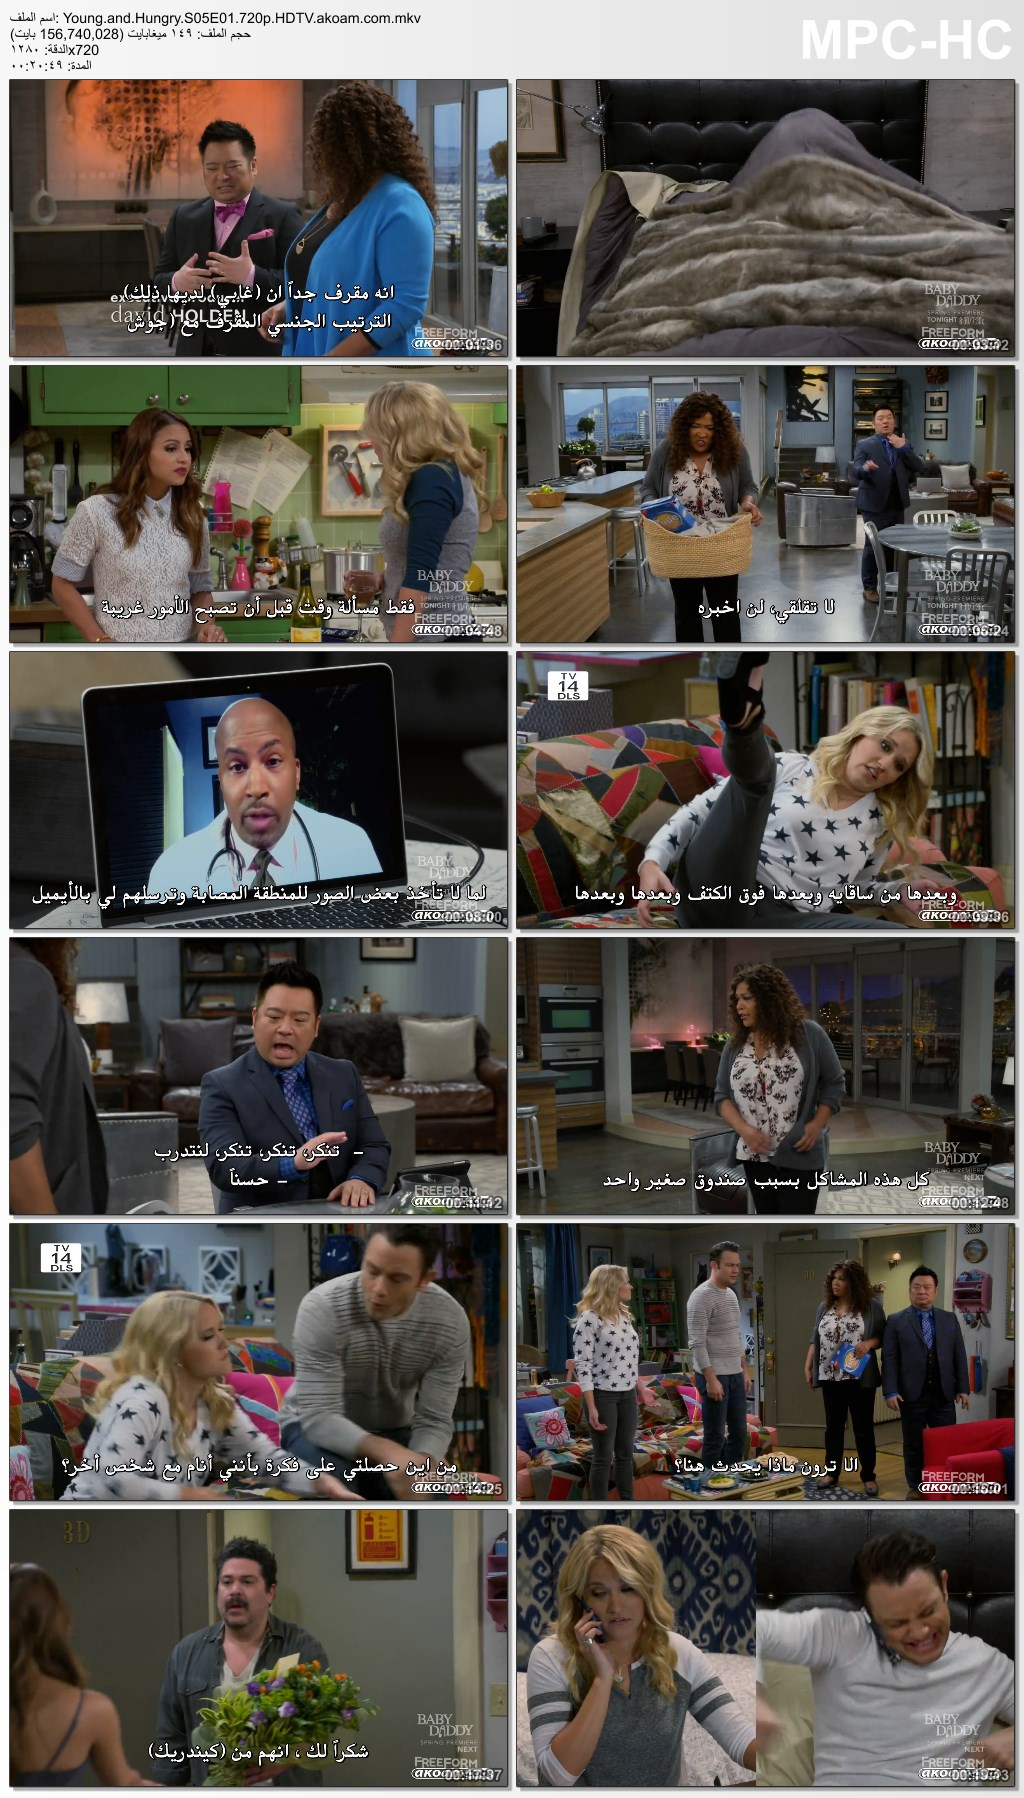 Young and Hungry,شابة وجائعة,الدراما,الكوميديا,الرومانسية,Young & Hungry